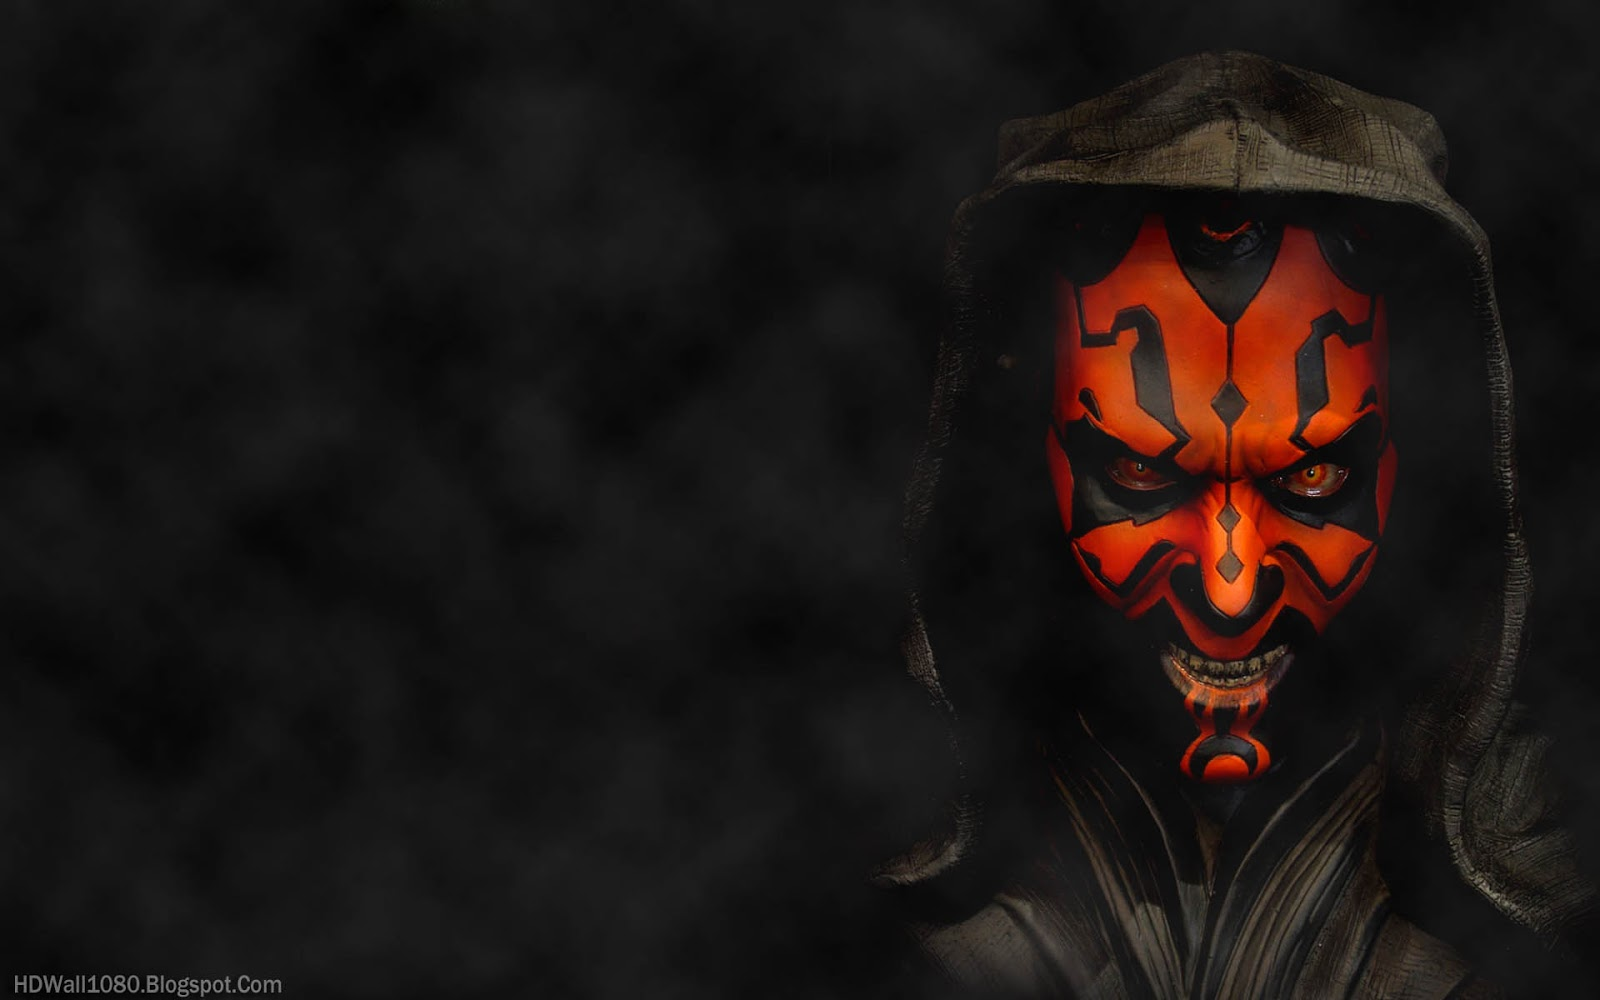 Picture Name Lord Of The Sith Star Wars Wallpaper Resolotion 2048 x 1600x1000